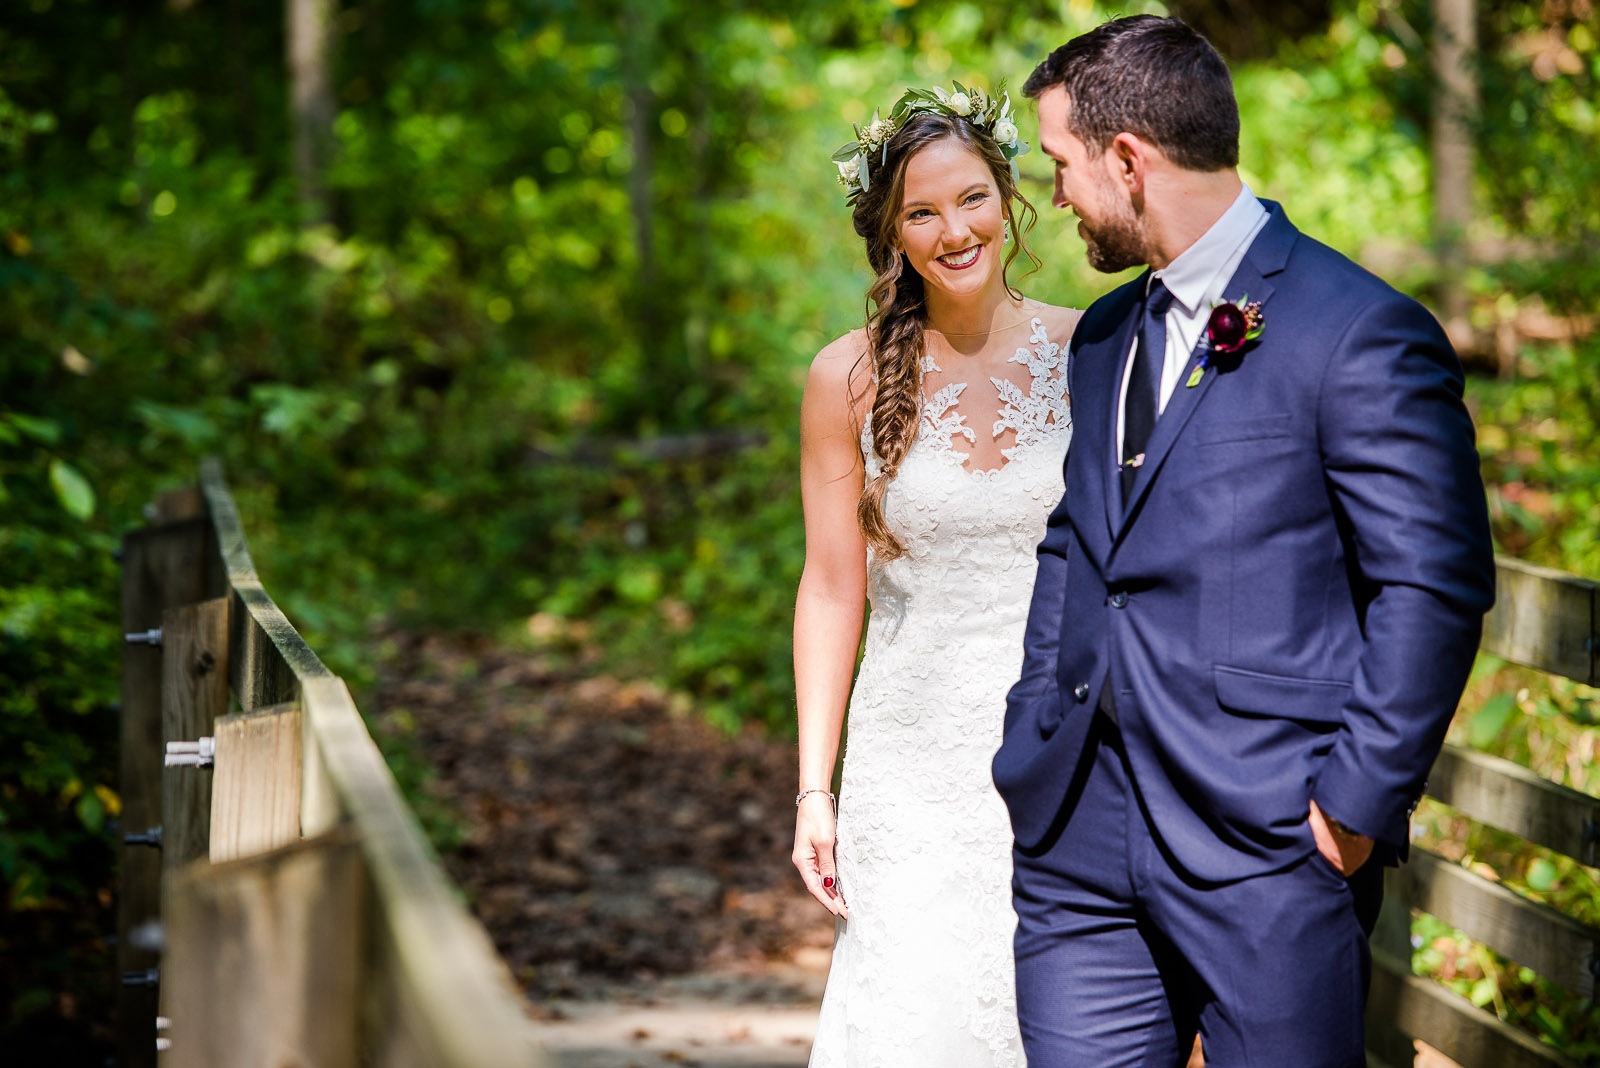 Eric_and_Christy_Photography_Blog_2018_Wed_moments-13